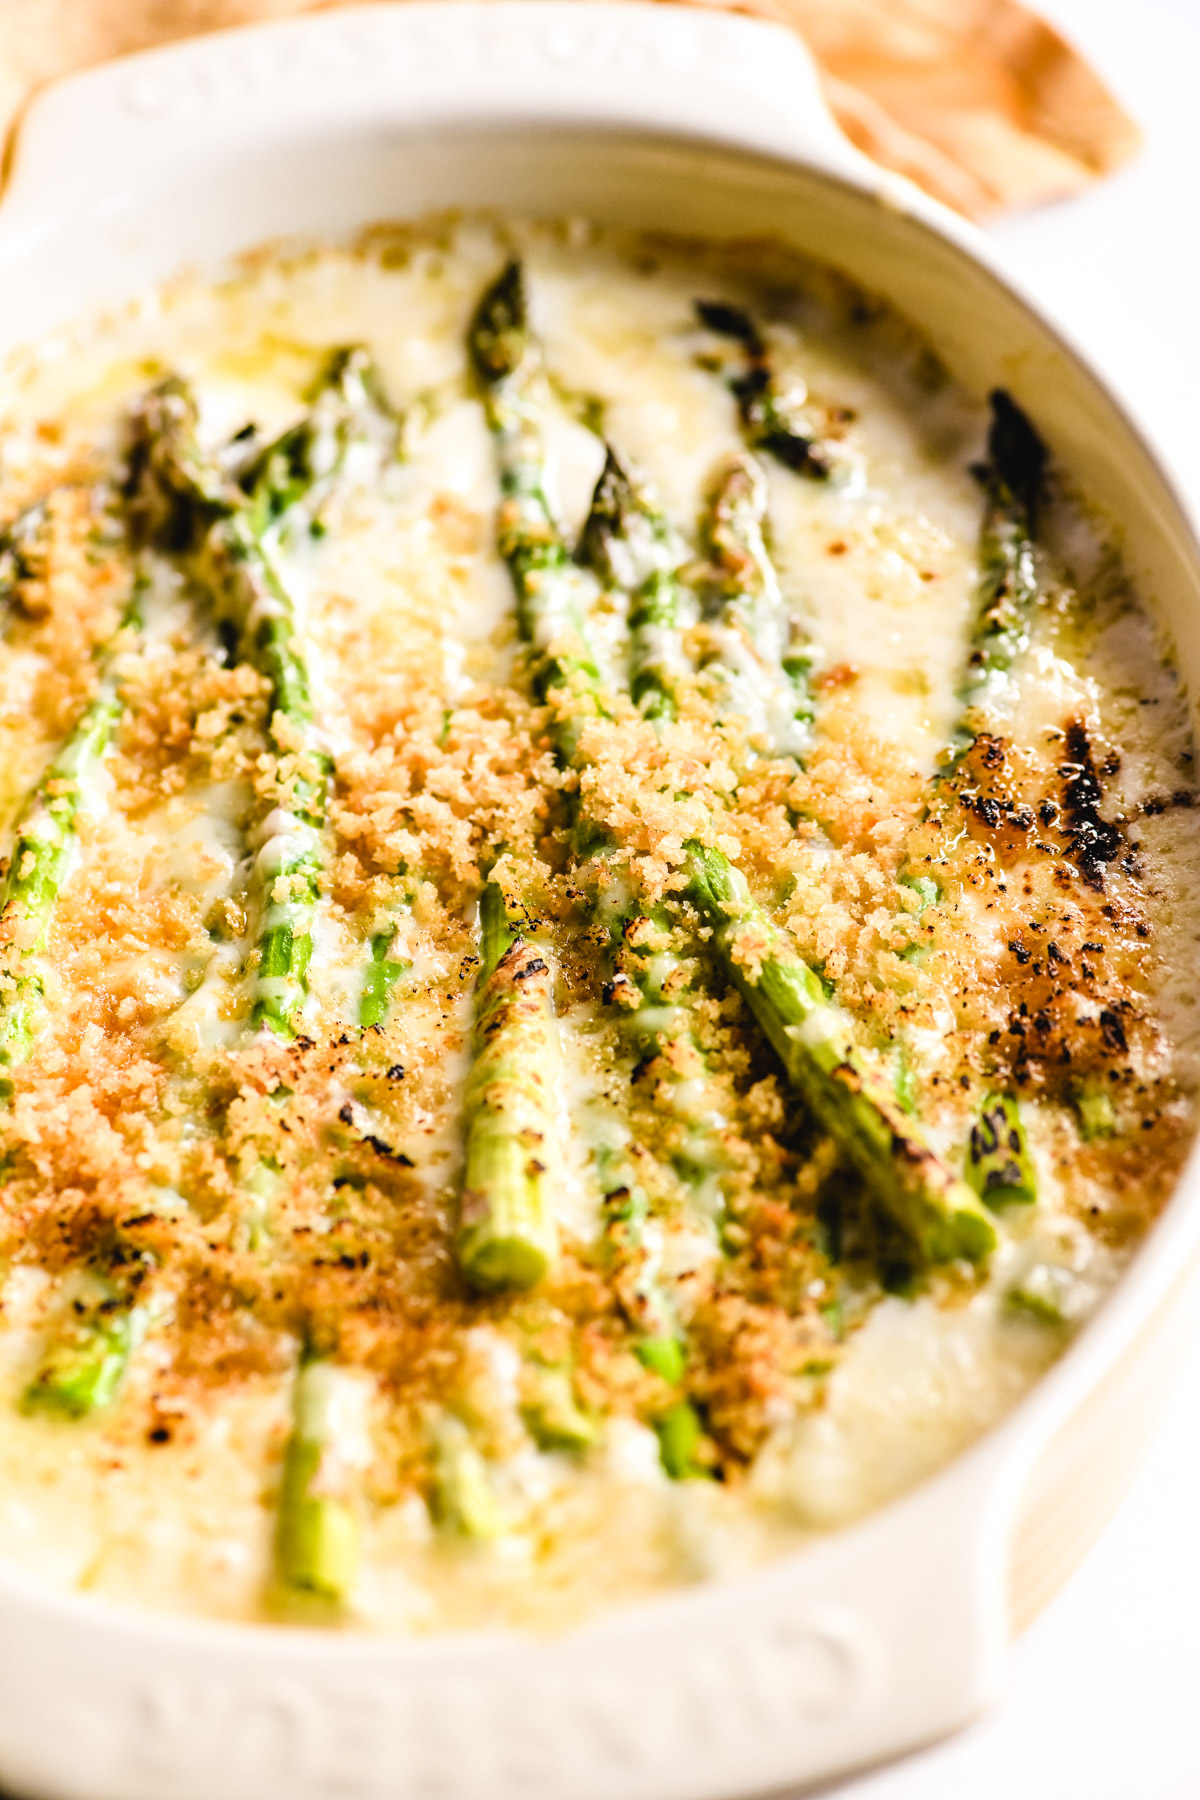 asparagus gratin, bubbling hot from the oven